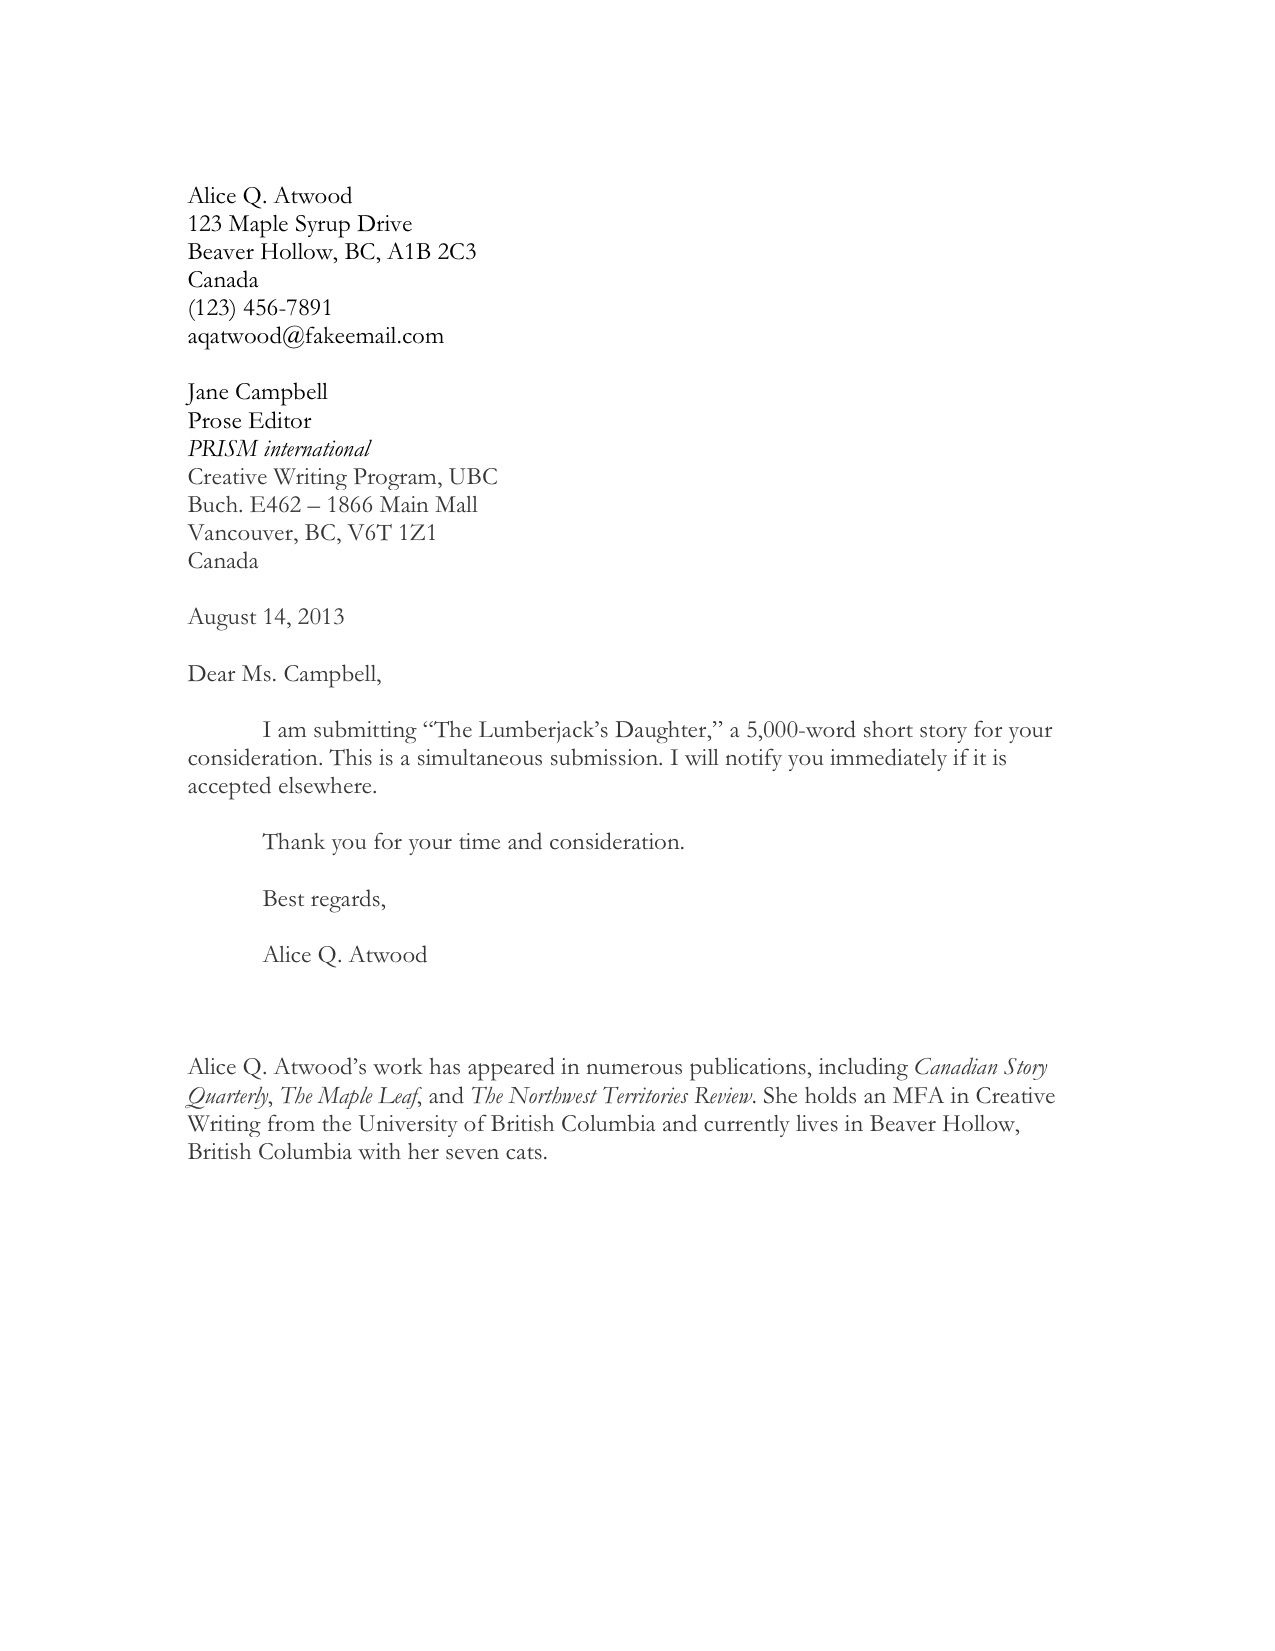 Application letter sample word for Cover letter for magazine job